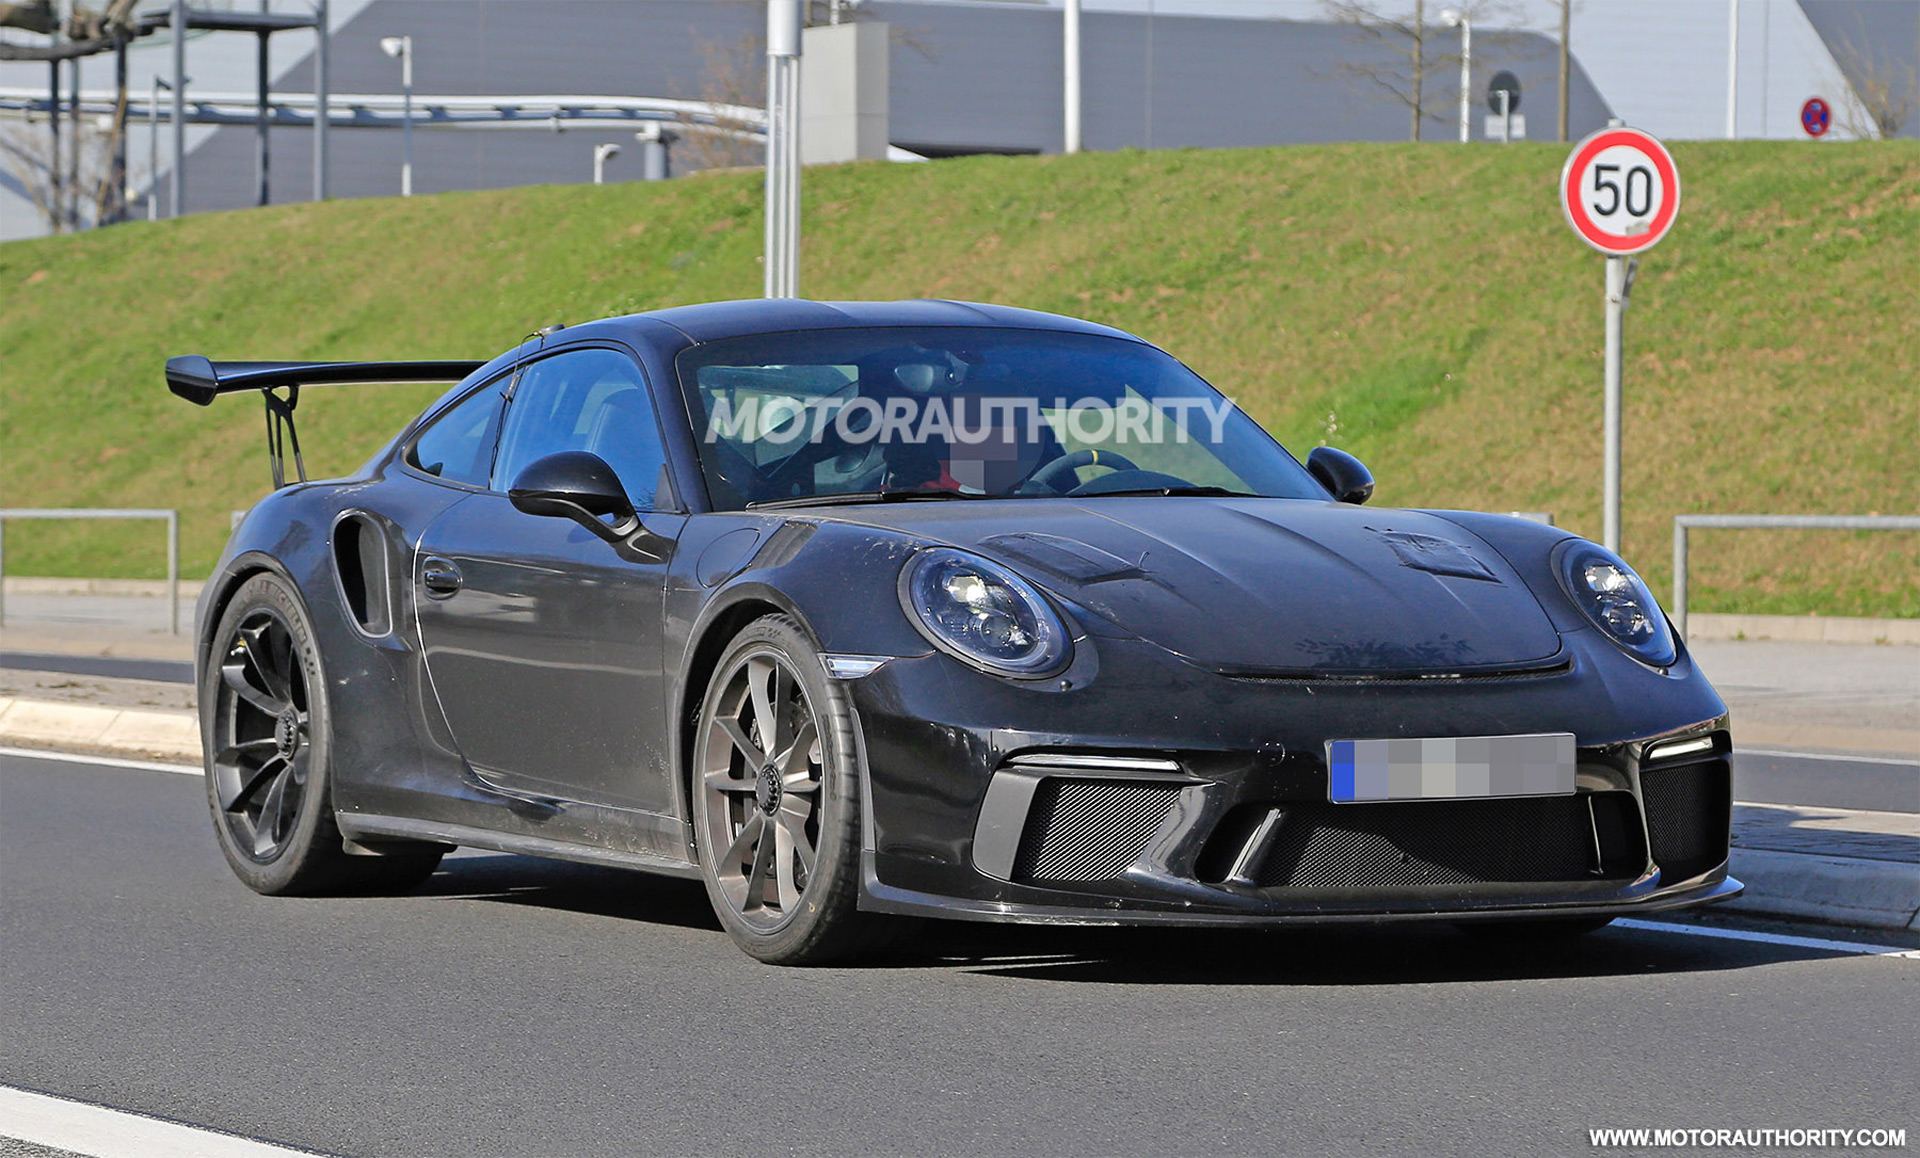 2018 porsche 911 gt3 rs spy shots autozaurus. Black Bedroom Furniture Sets. Home Design Ideas